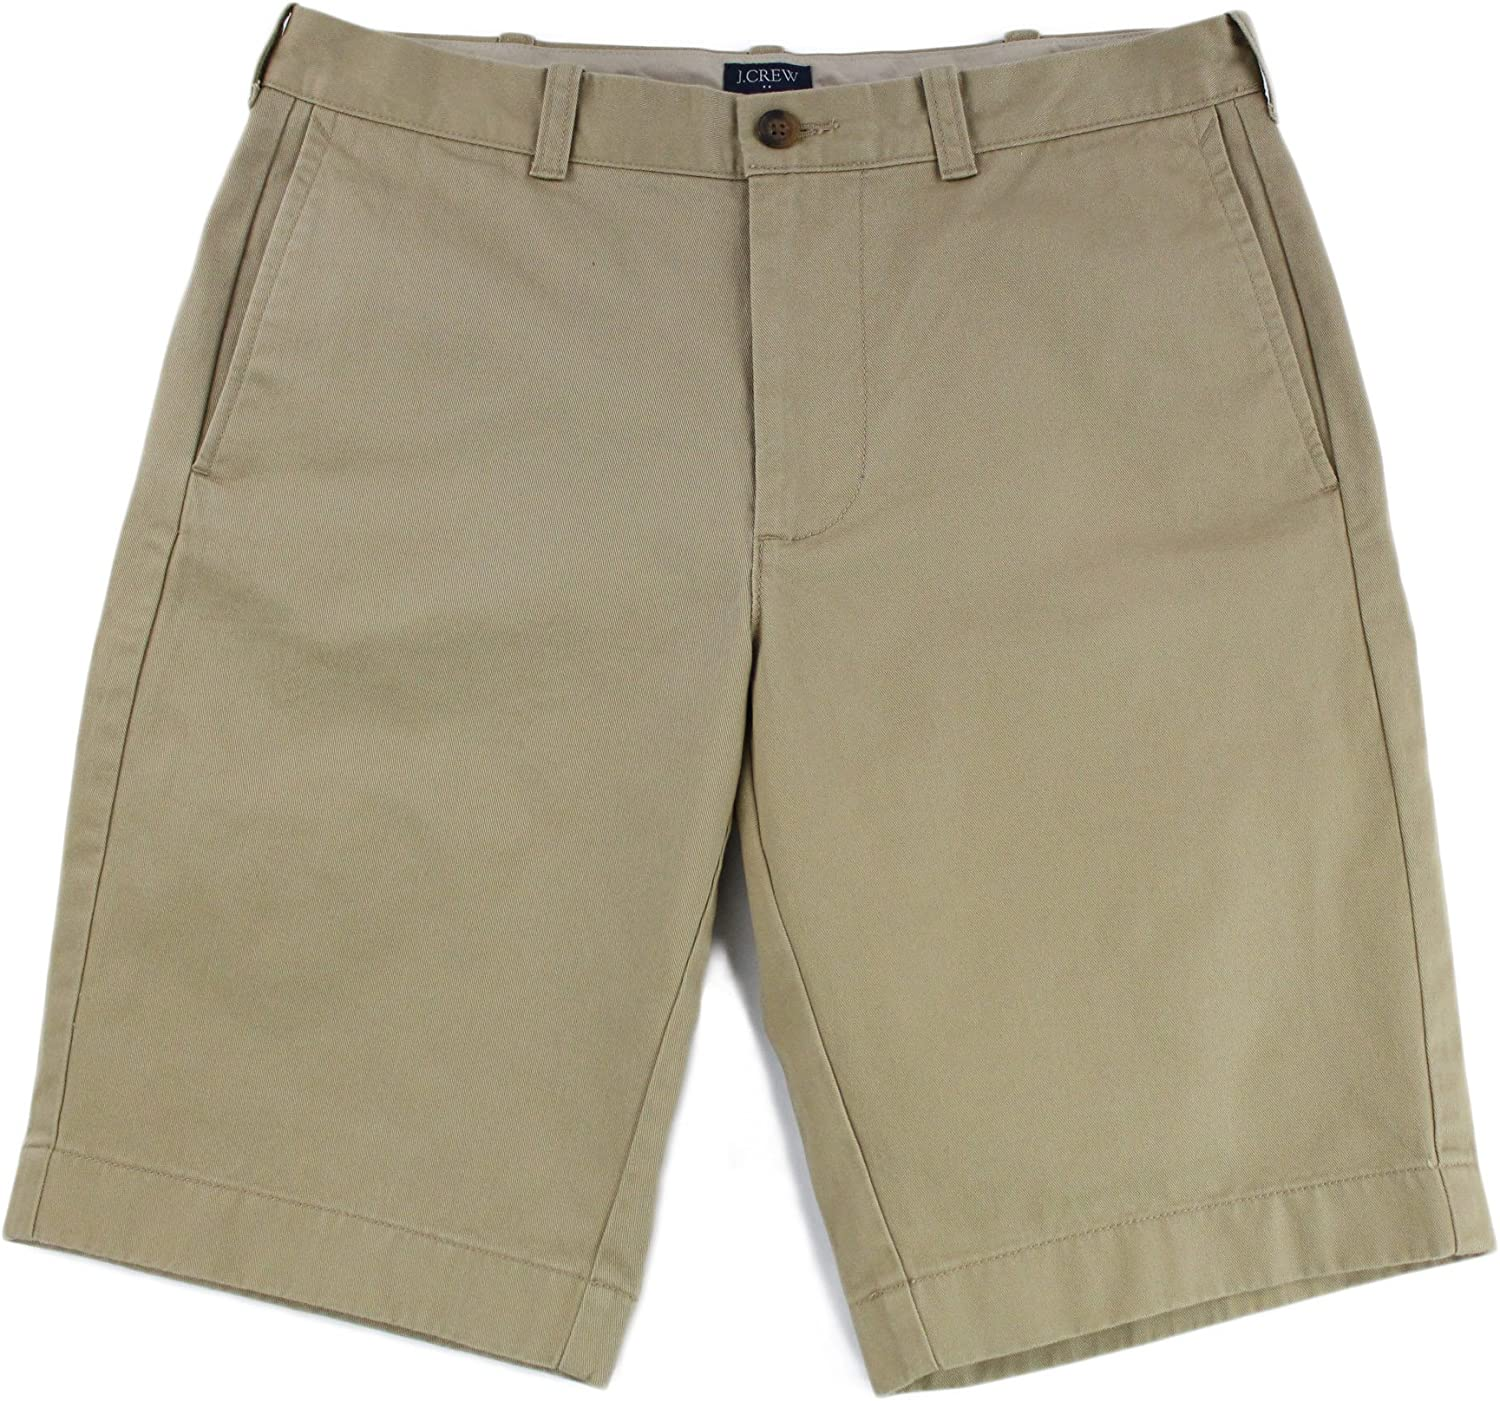 "J. Crew - Men's - 11"" Broken-in Chino Shorts (Multiple Size/Color Options)"